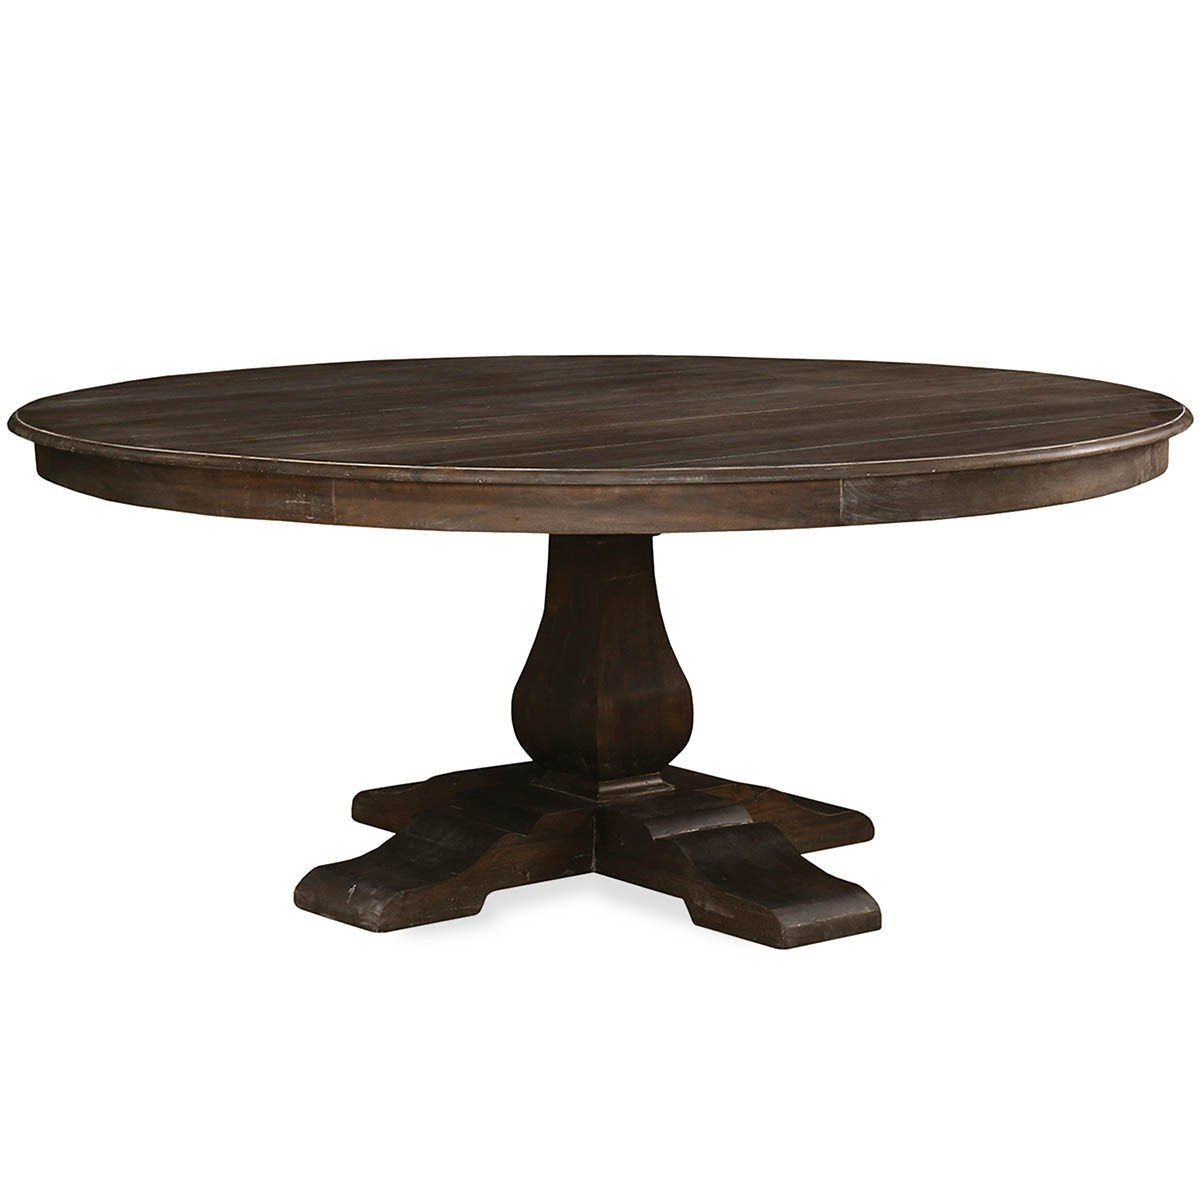 TRESTLE 5' ROUND DINING TABLE - Showhome Furniture